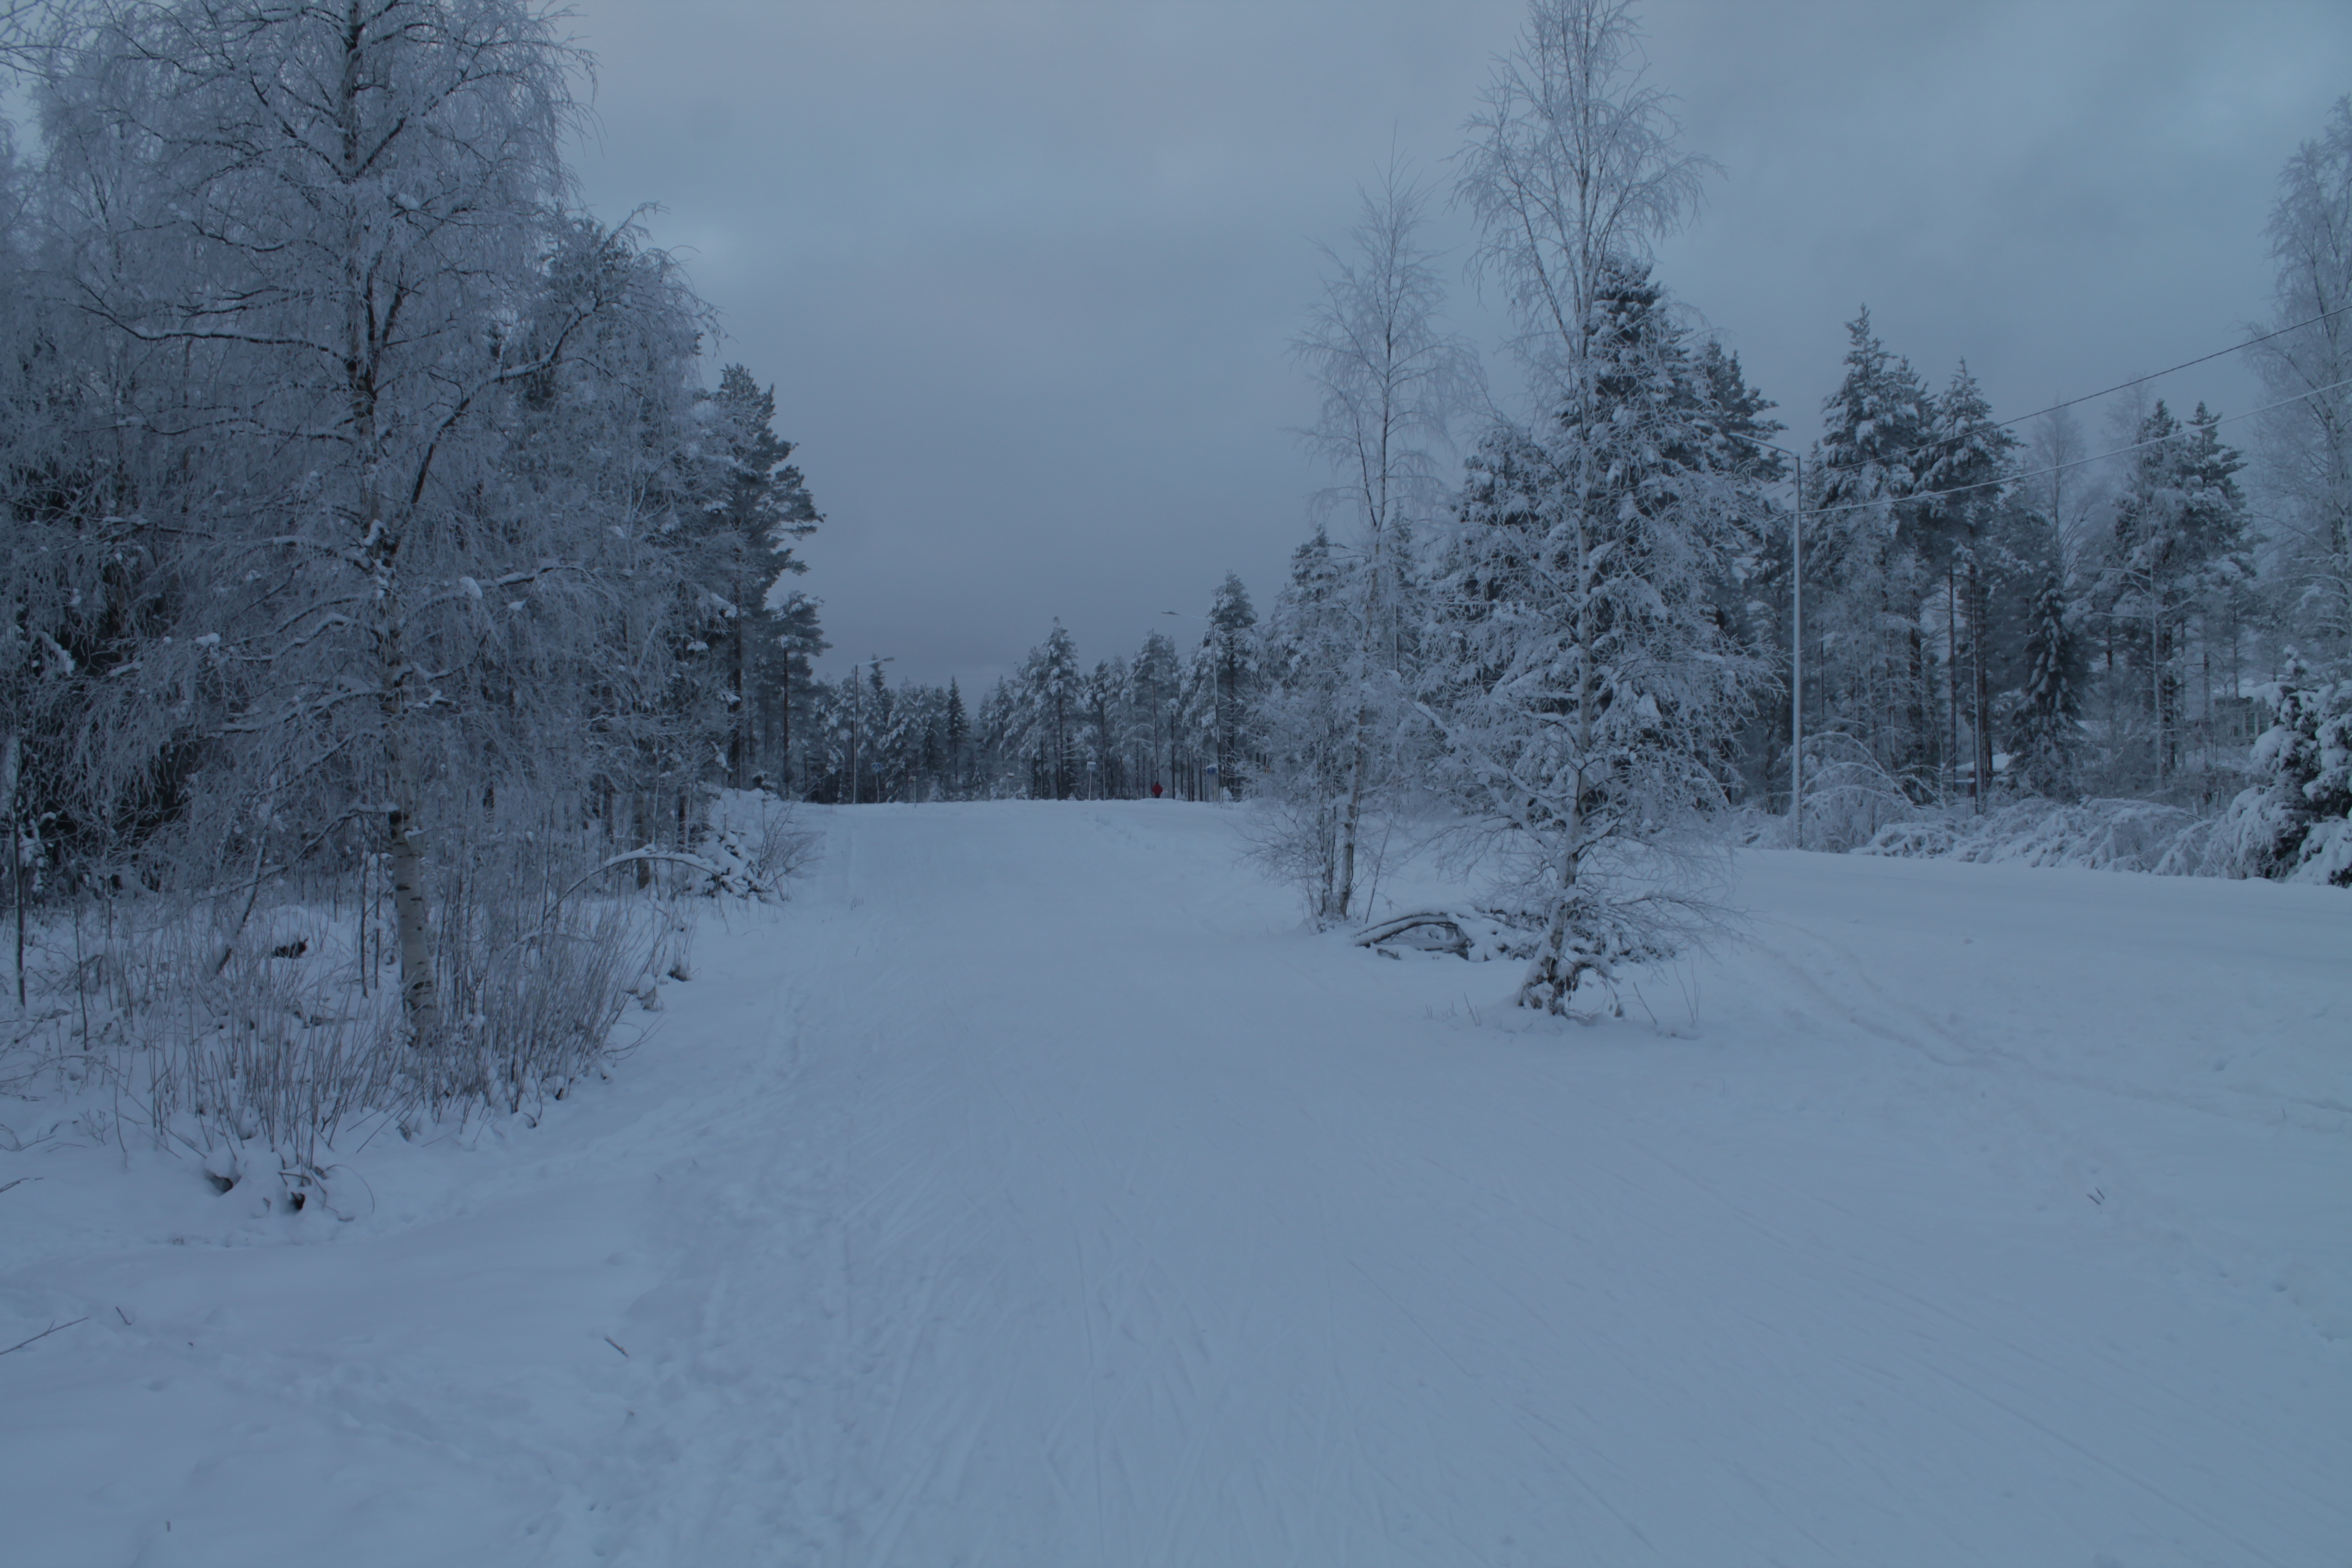 Taking a shortcut through a swampy, snowy forest | Life of the (not